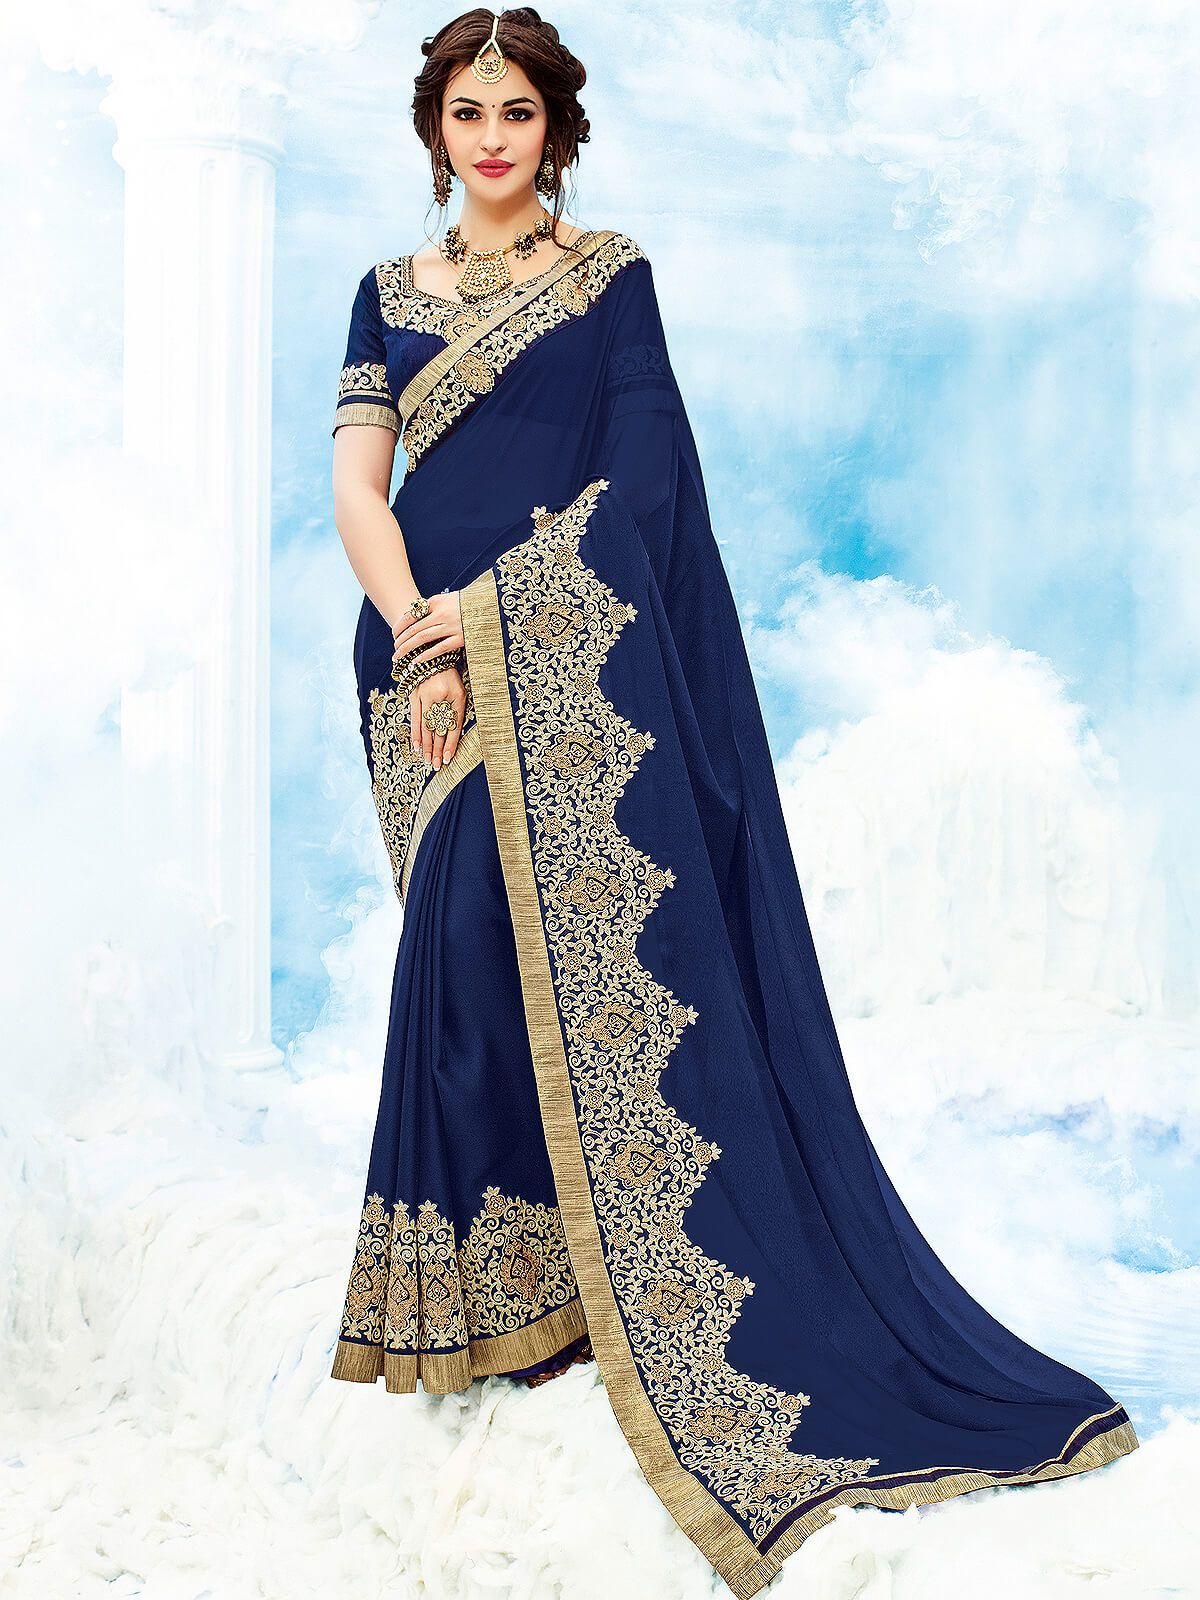 46b8cb88f2 Genial navy blue party wear chiffon designer saree. Having fabric chiffon  and raw silk. This gorgeous saree is displaying some brilliant embroidery  done ...